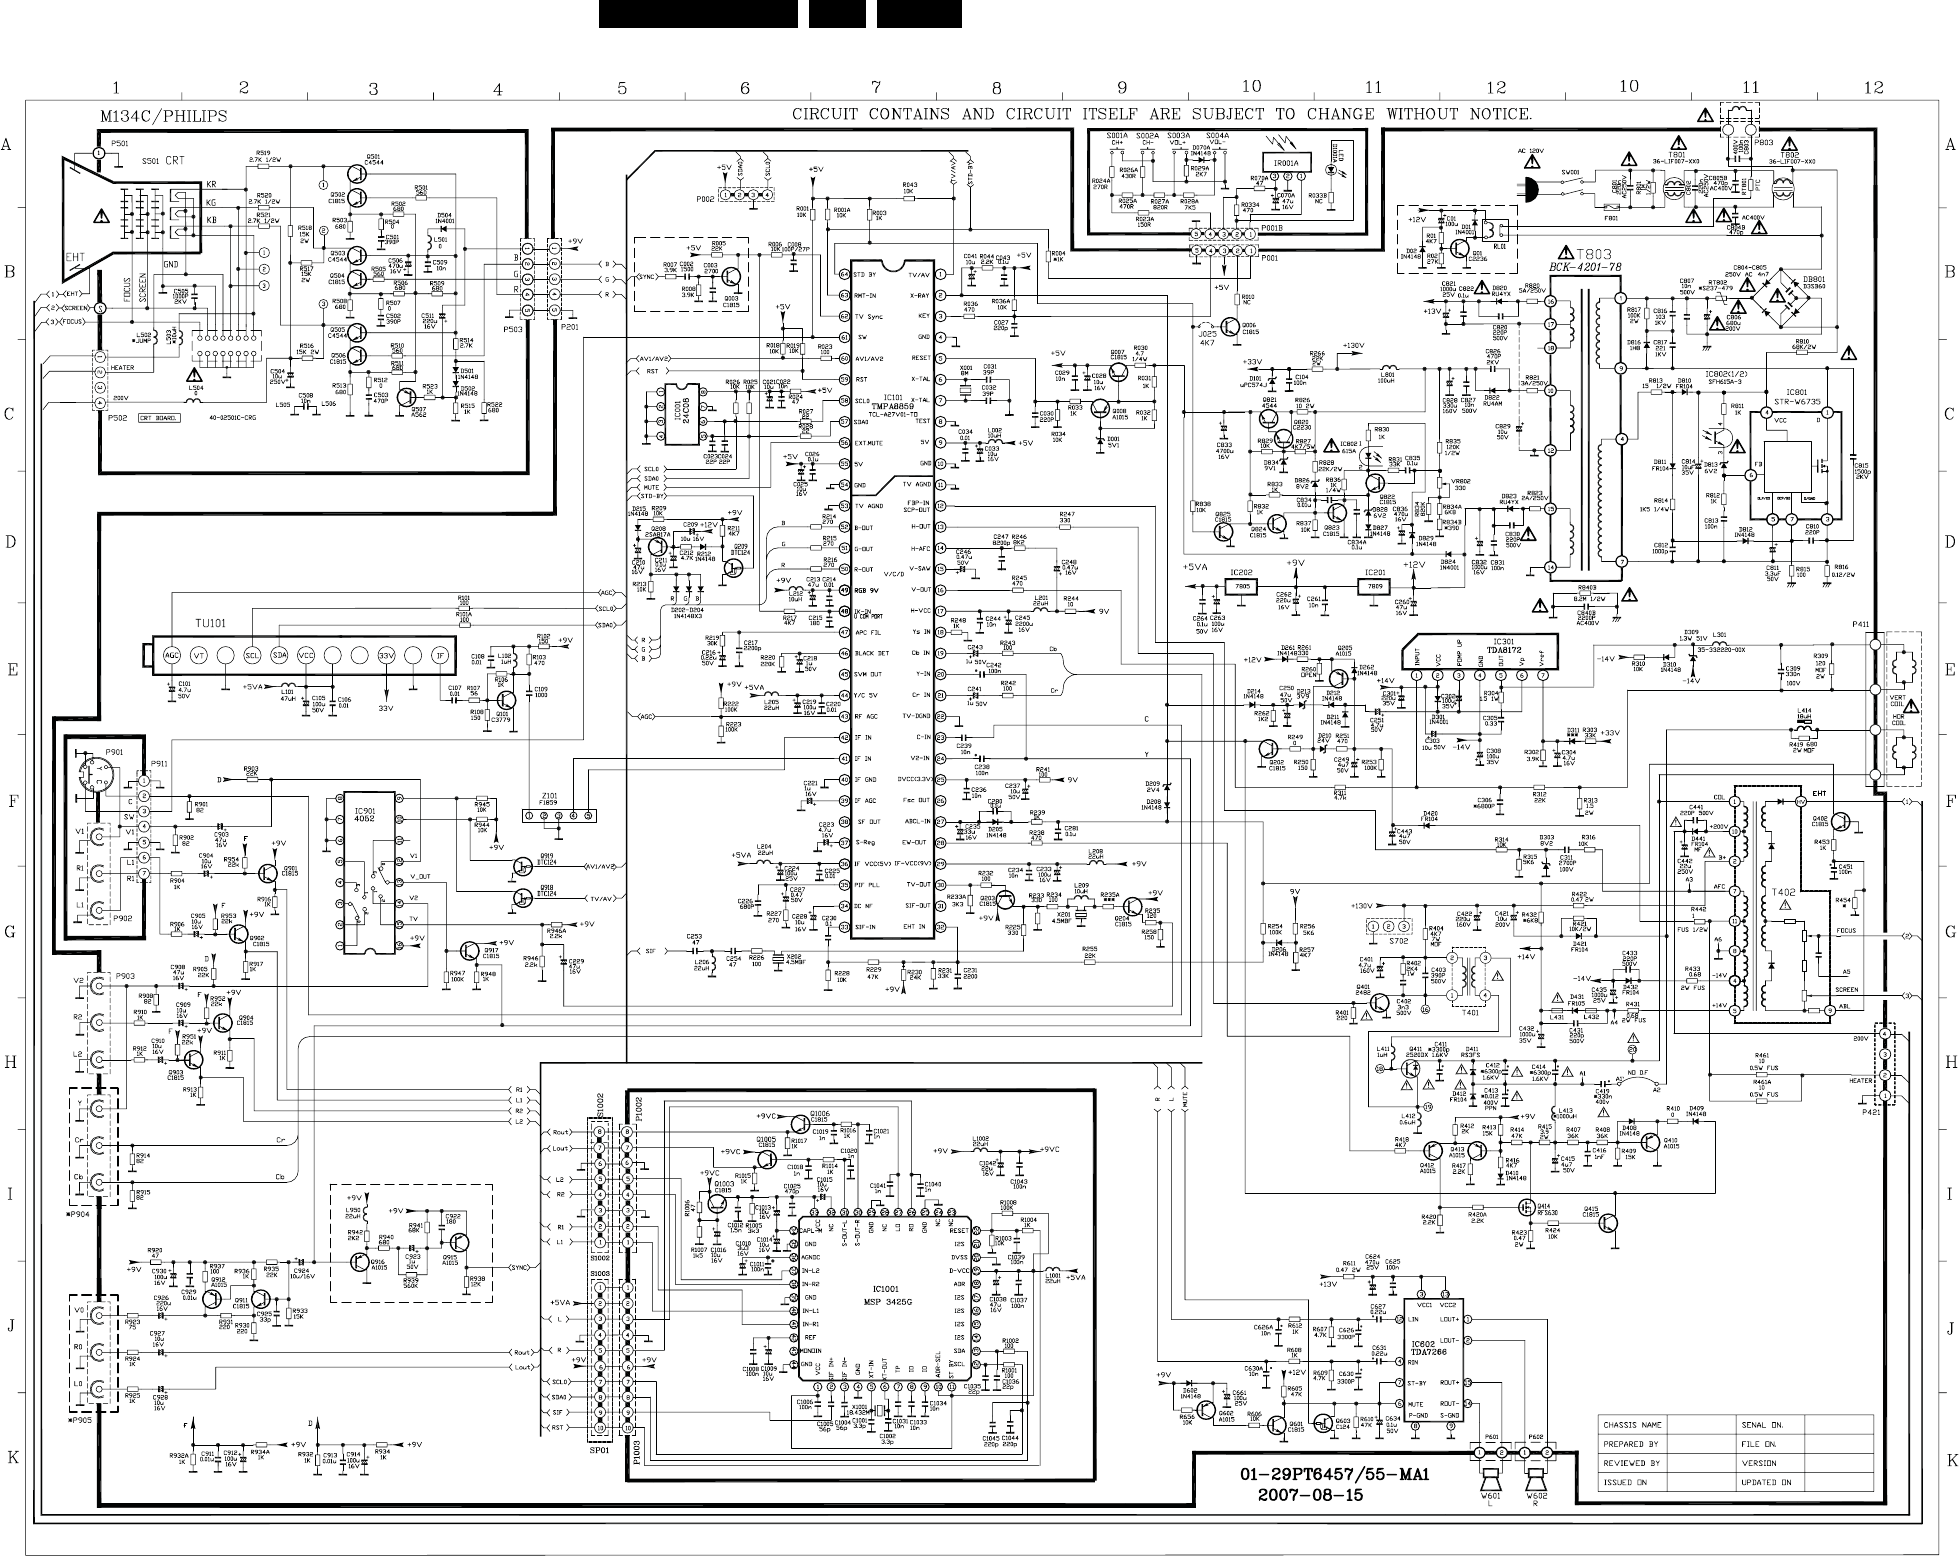 Tc51l Cb 312278517510 29pt6457 Philips Chassis Highpass Hp Active Filter For 1khz Circuit Diagram Diagrams And Cba Layouts En 11tc51l 7